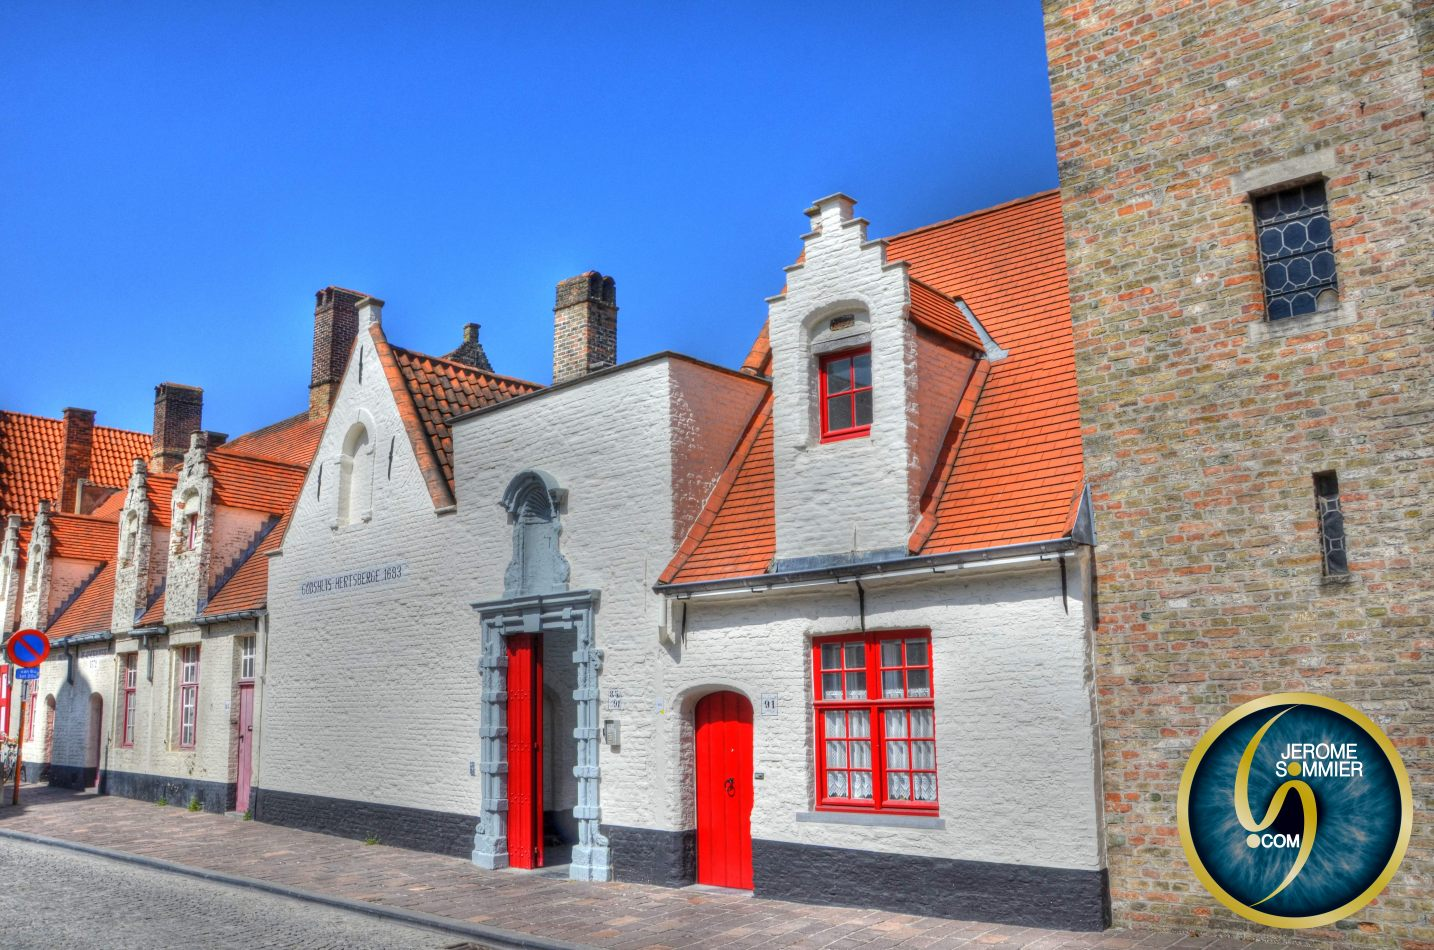 Jerome Sommier Photos - Travel & Events: Bruges